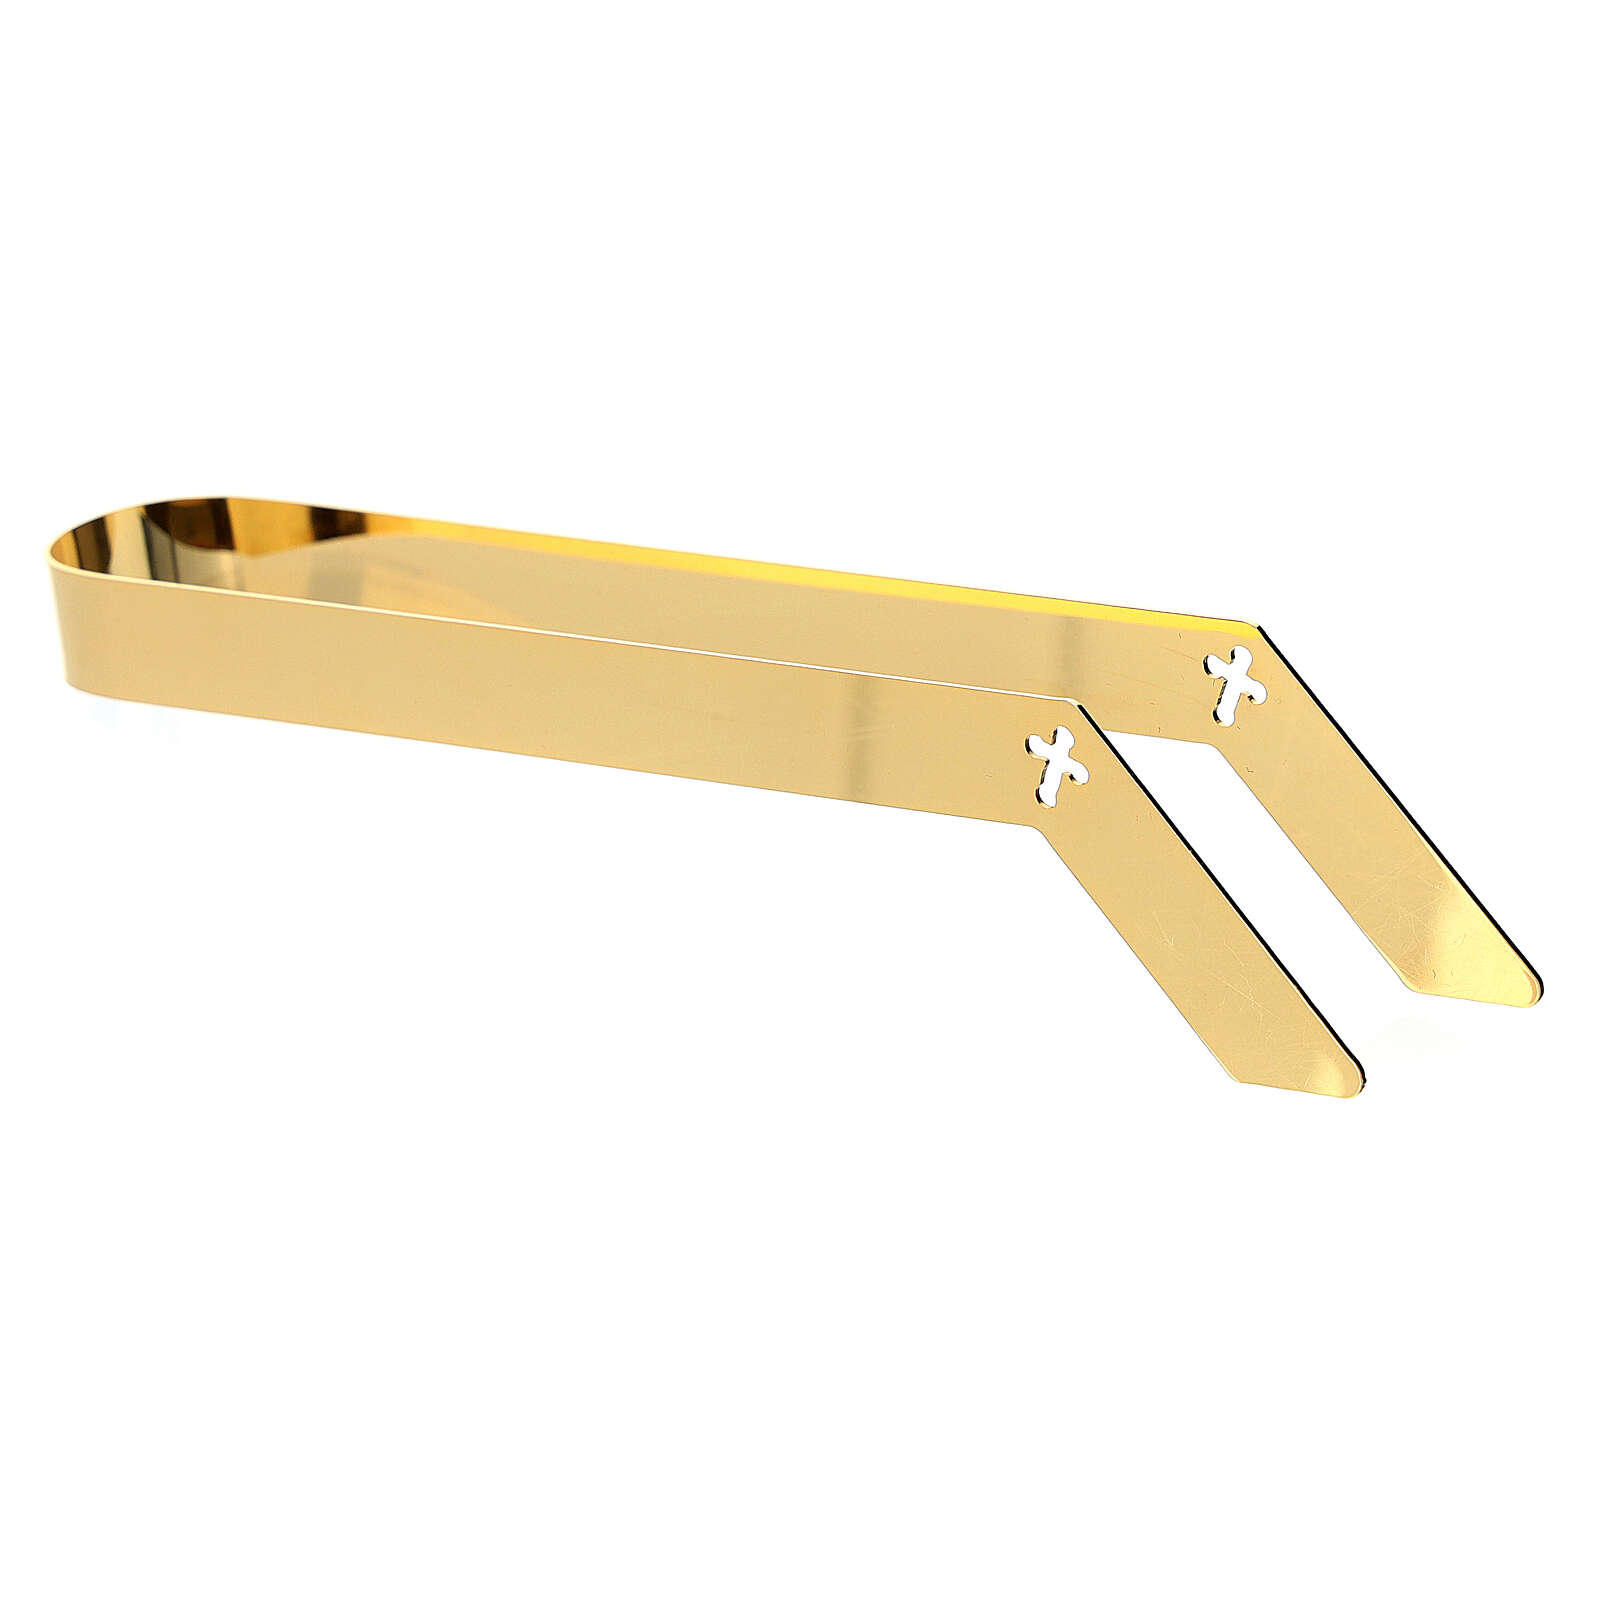 Gold plated pliers for Eucharist distribution, 16 cm 3